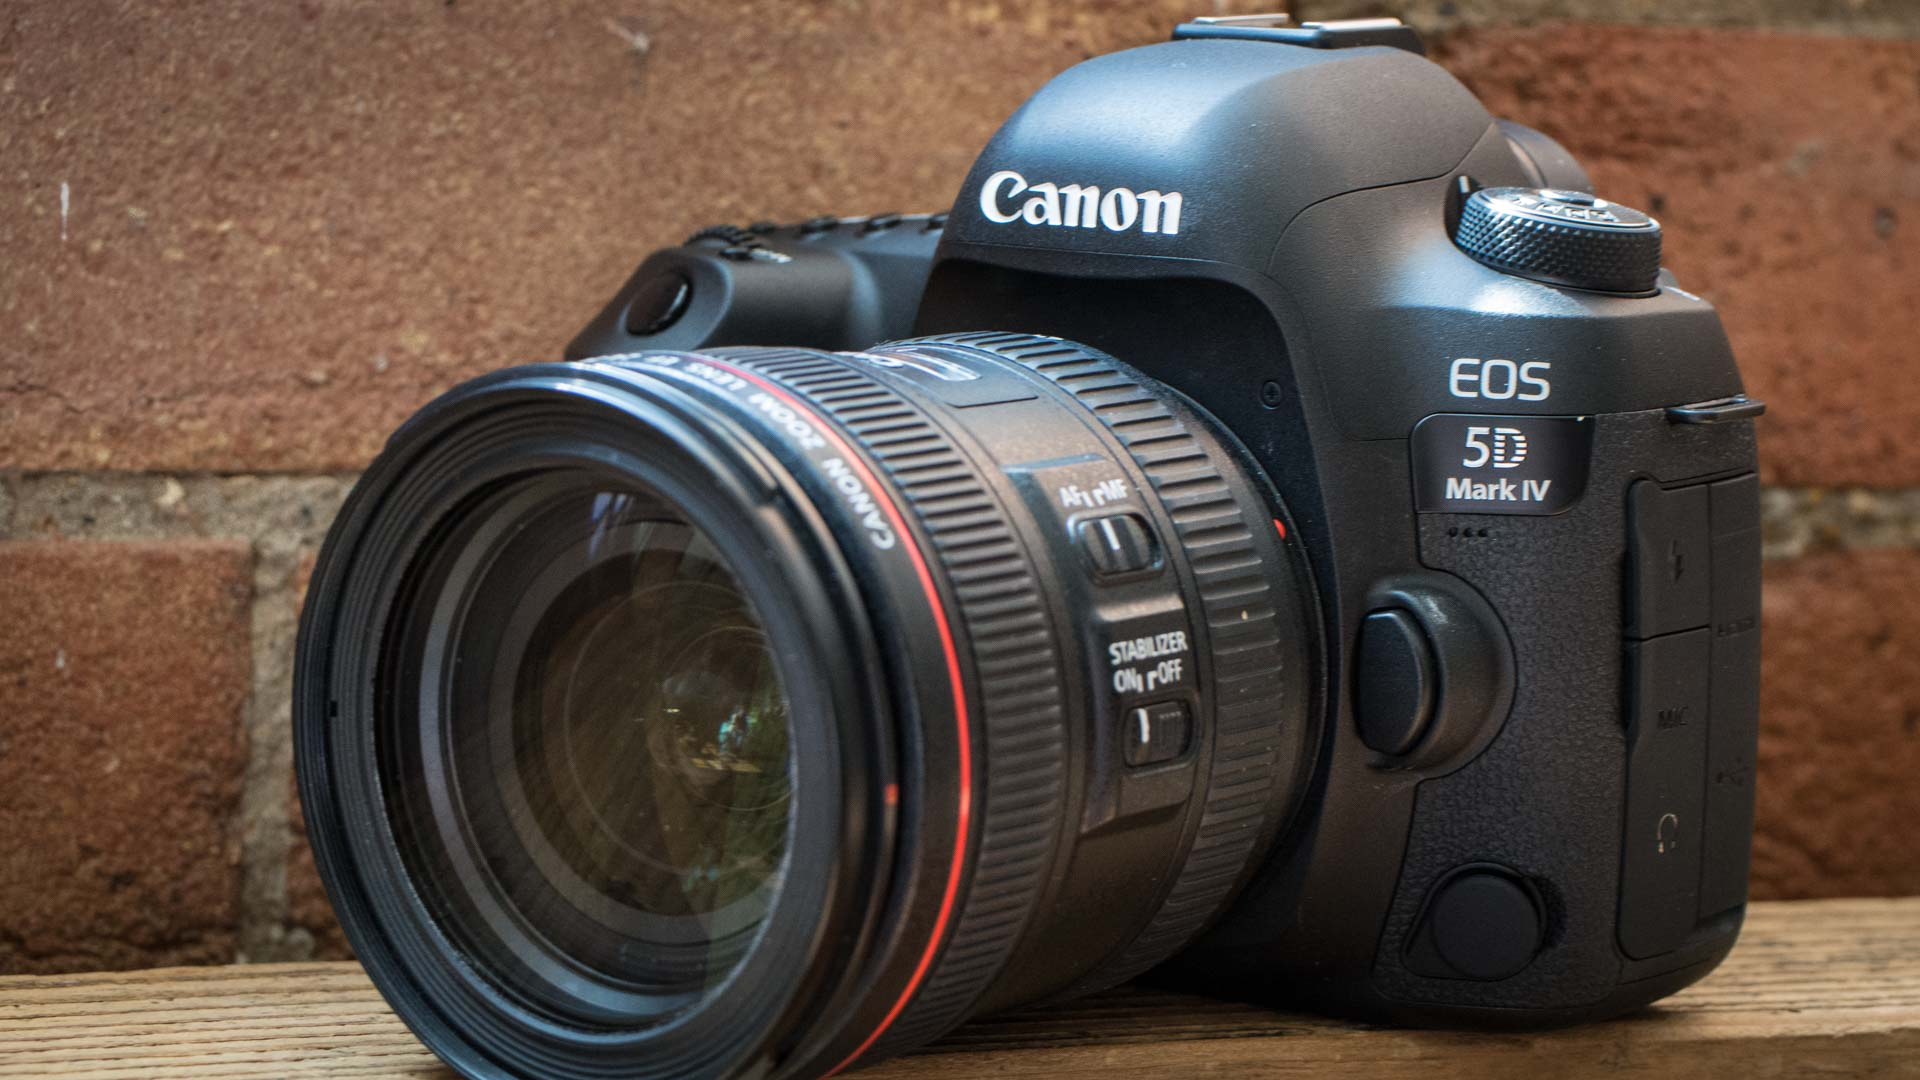 hands on with the canon eos 5d mark iv